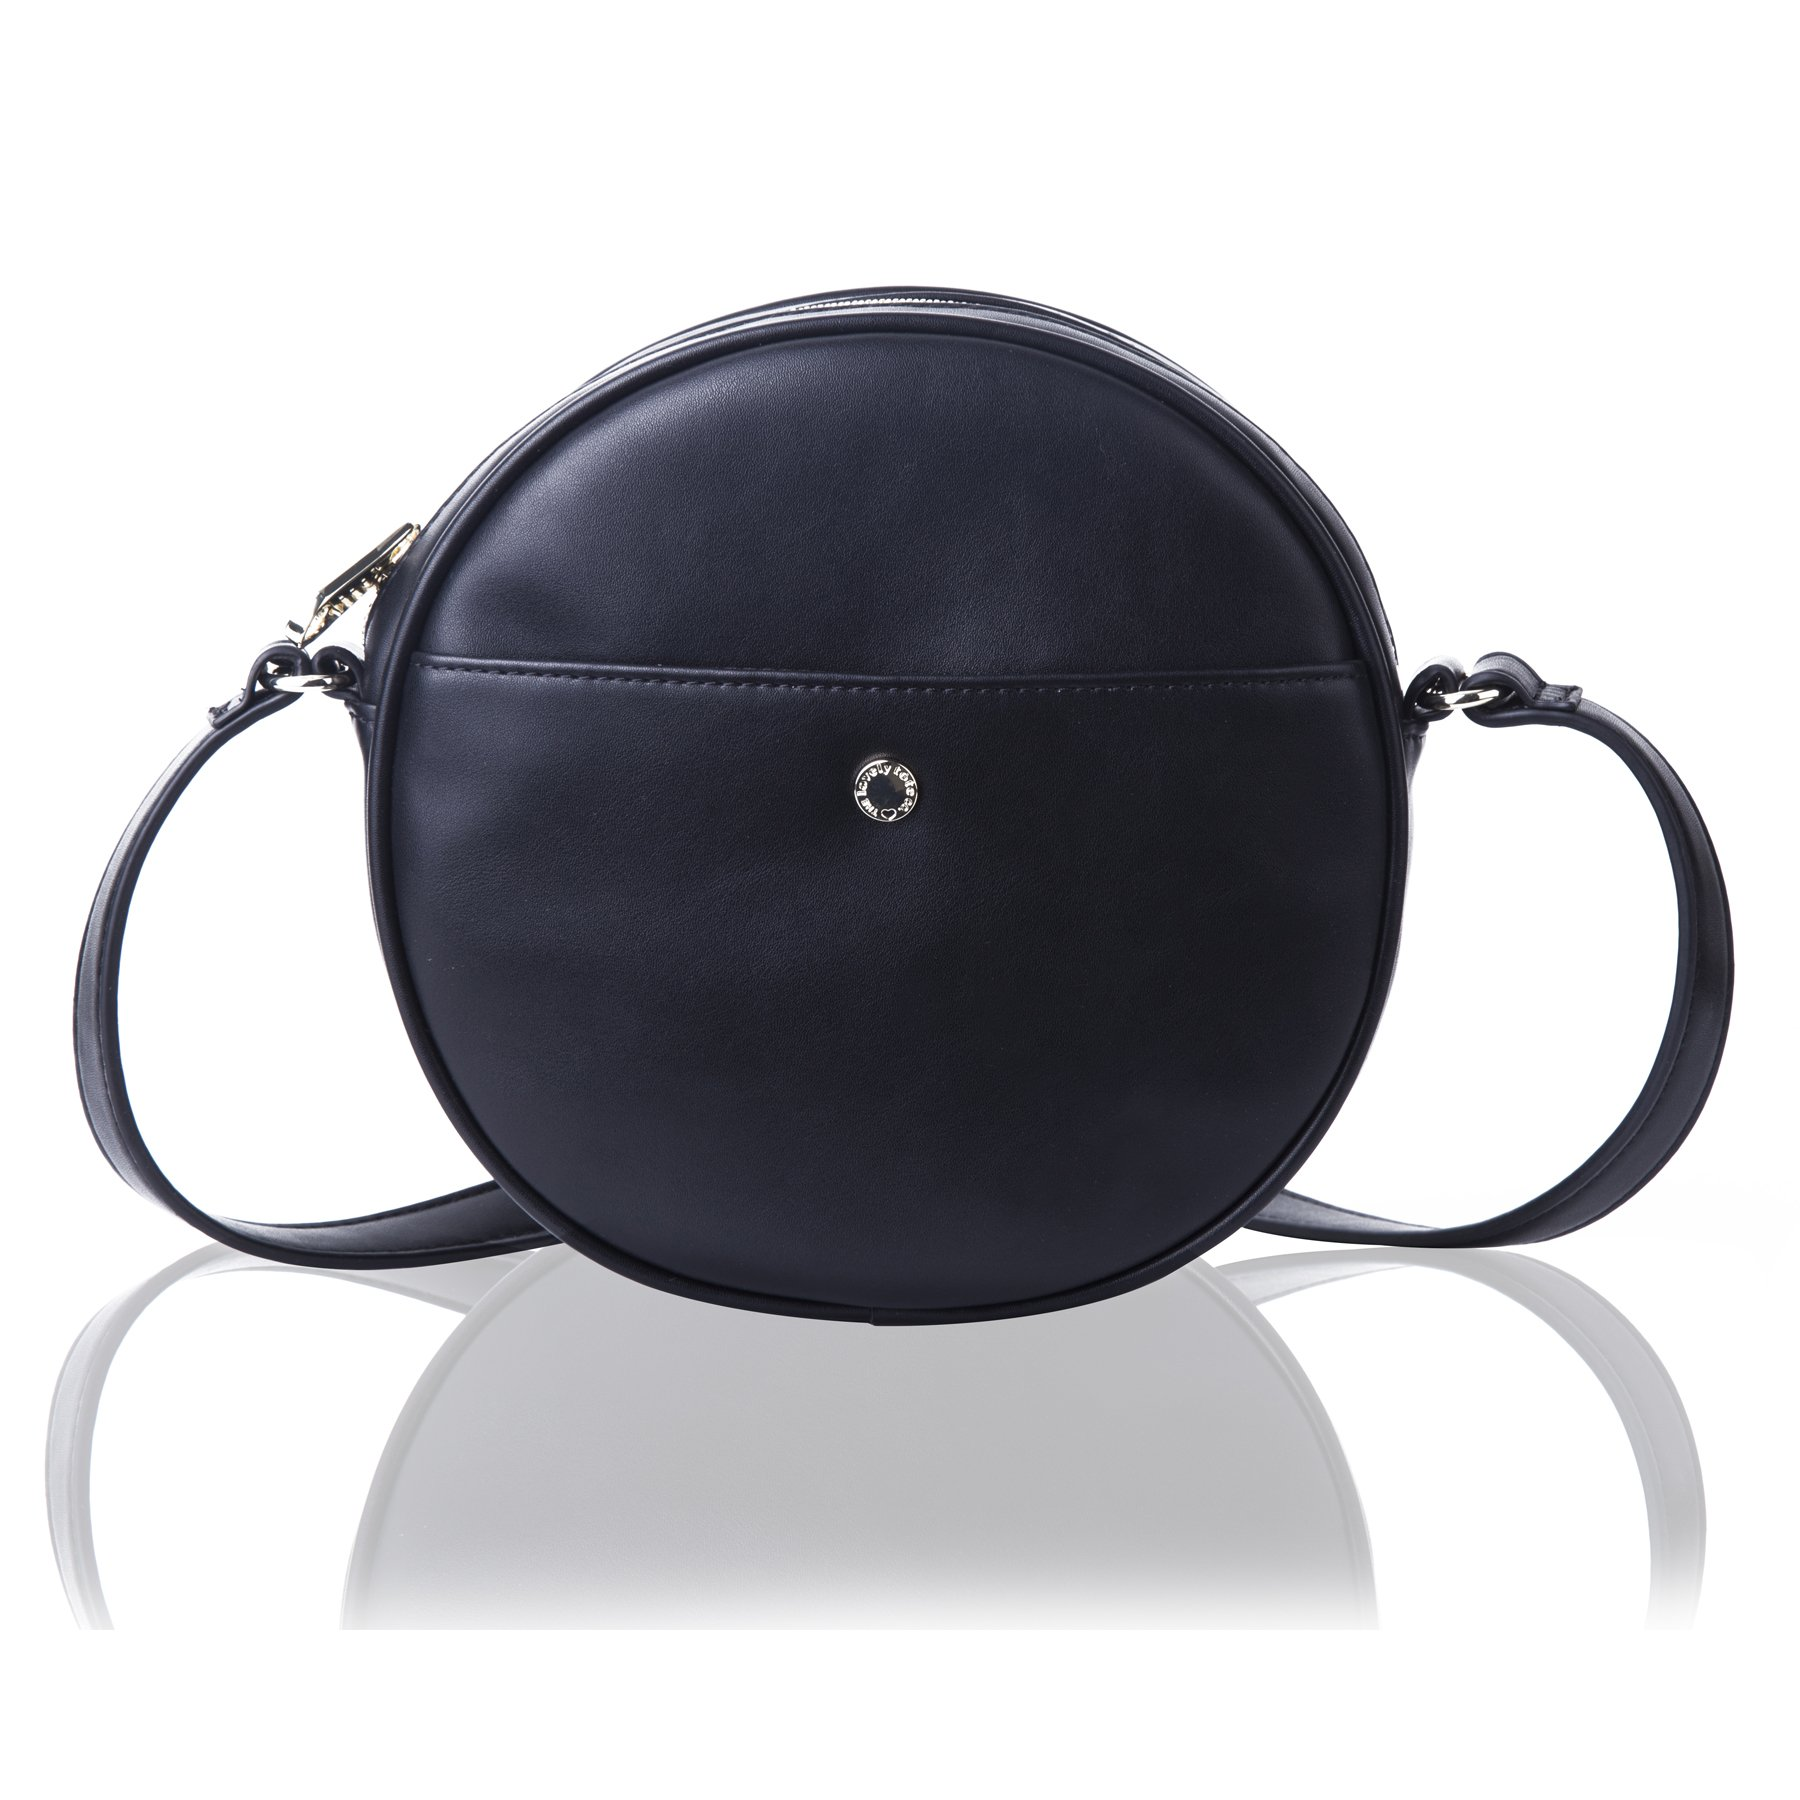 The Lovely Tote Co. Women's Round Cross-Body Bag Circle Purse (One, Adjustable Strap Black)